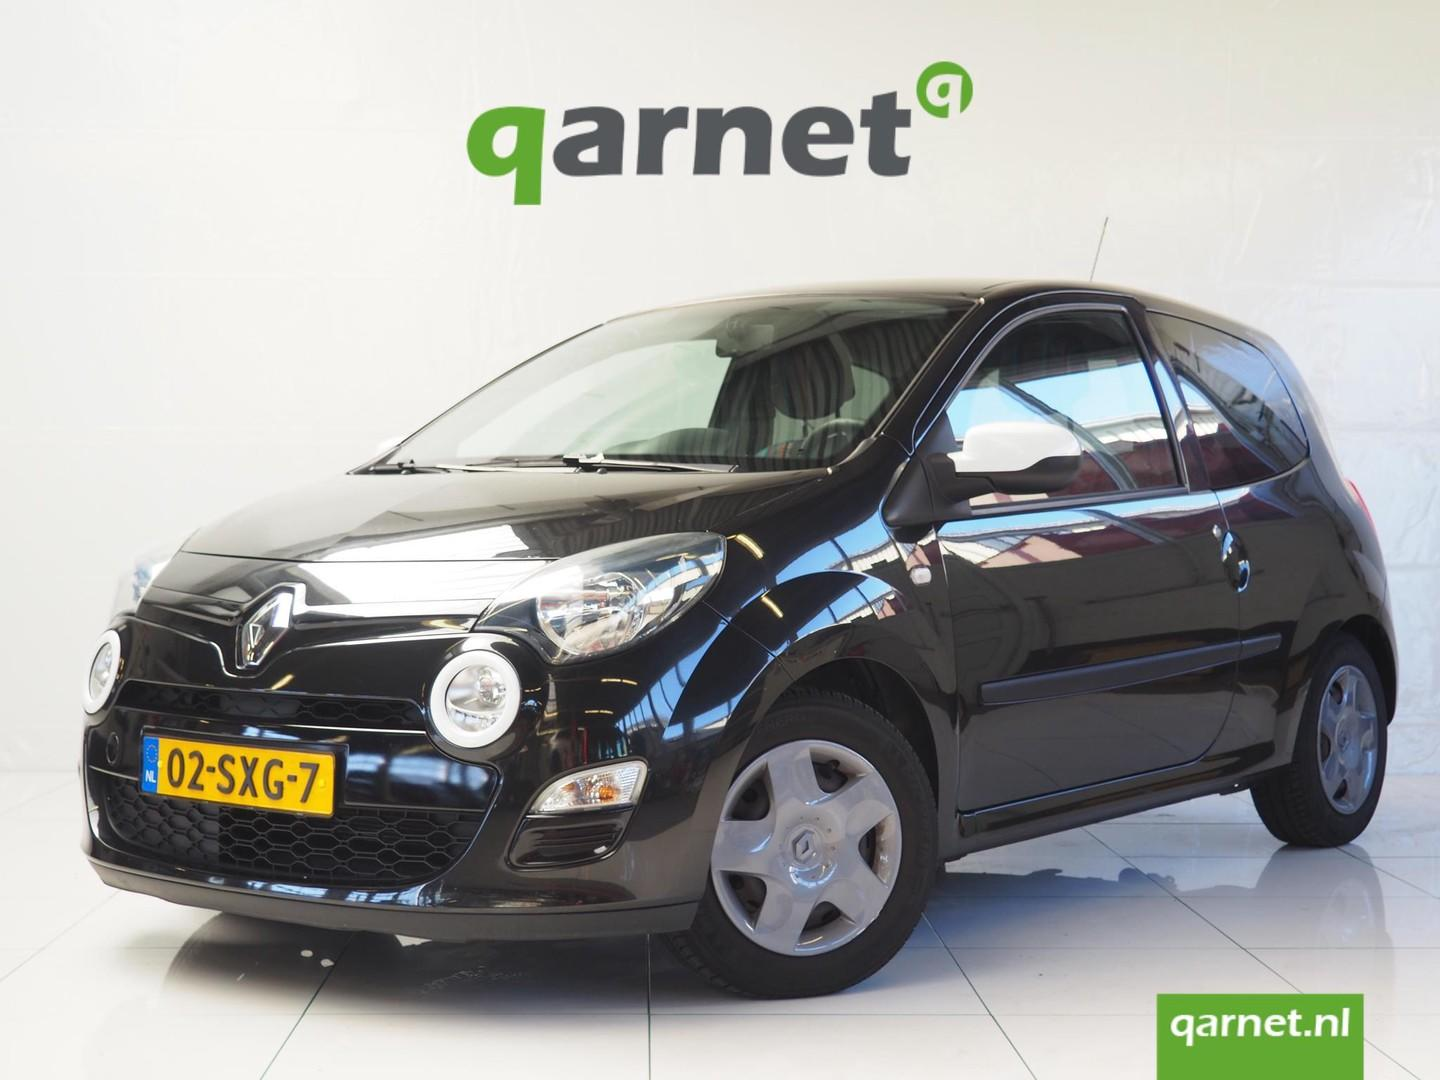 Renault Twingo 1.2 16v collection 2 opklapbare stoelen achter